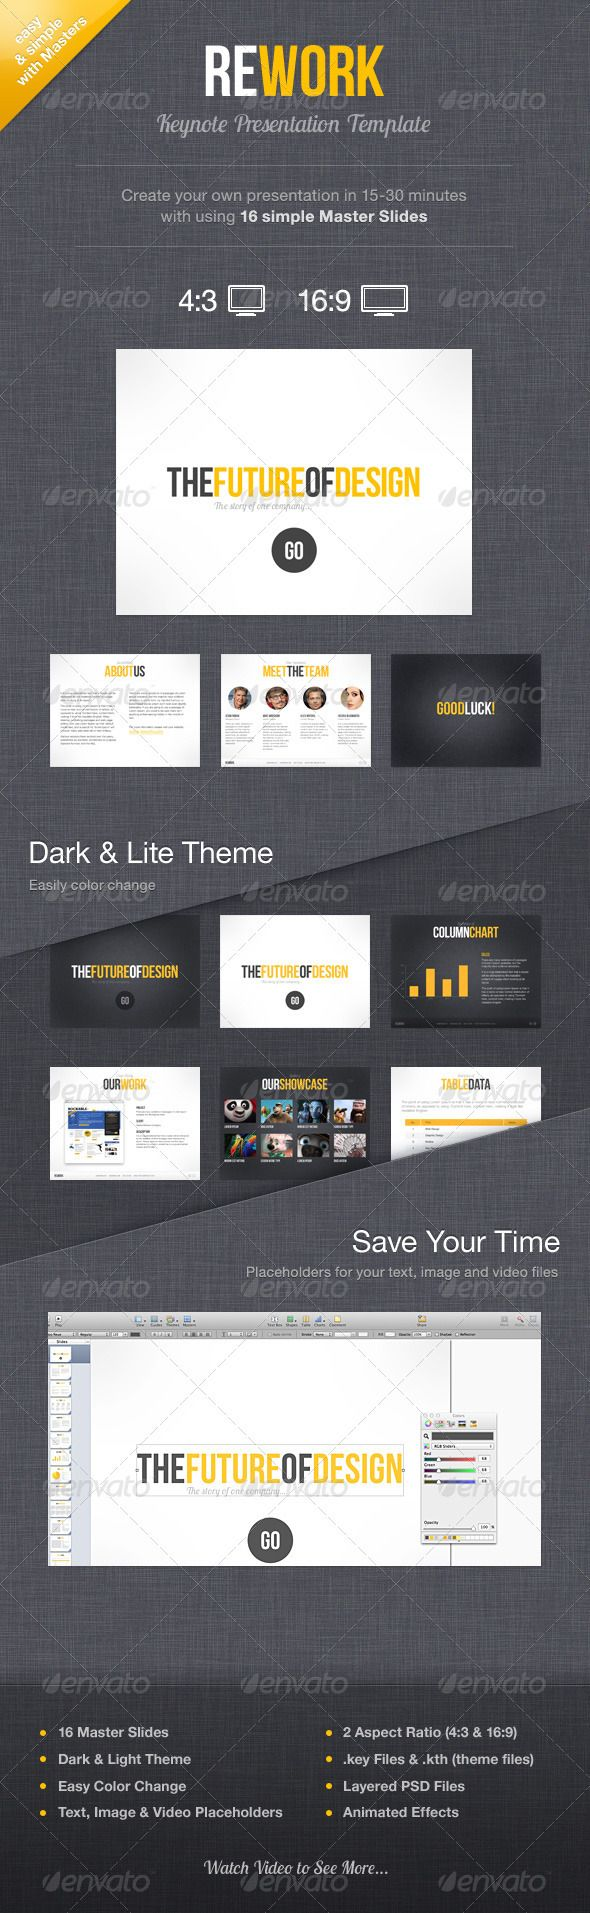 11 best presentations images on pinterest ppt design presentation rework keynote presentation template indesign templatesppt toneelgroepblik Image collections